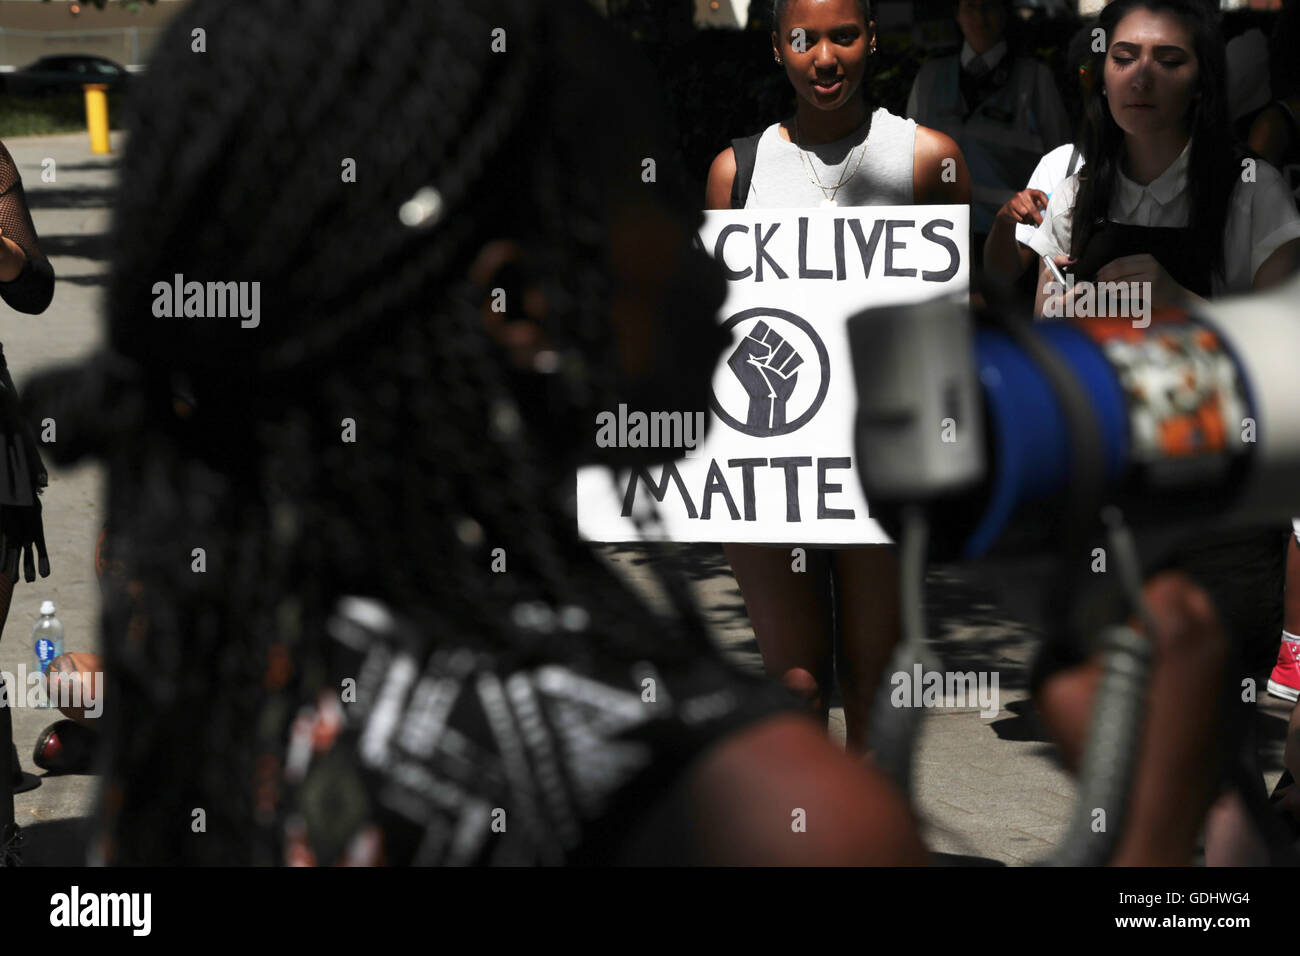 London, UK. 18th July, 2016. Demonstrators protest the shooting of African Americans and deaths in police custody - Stock Image